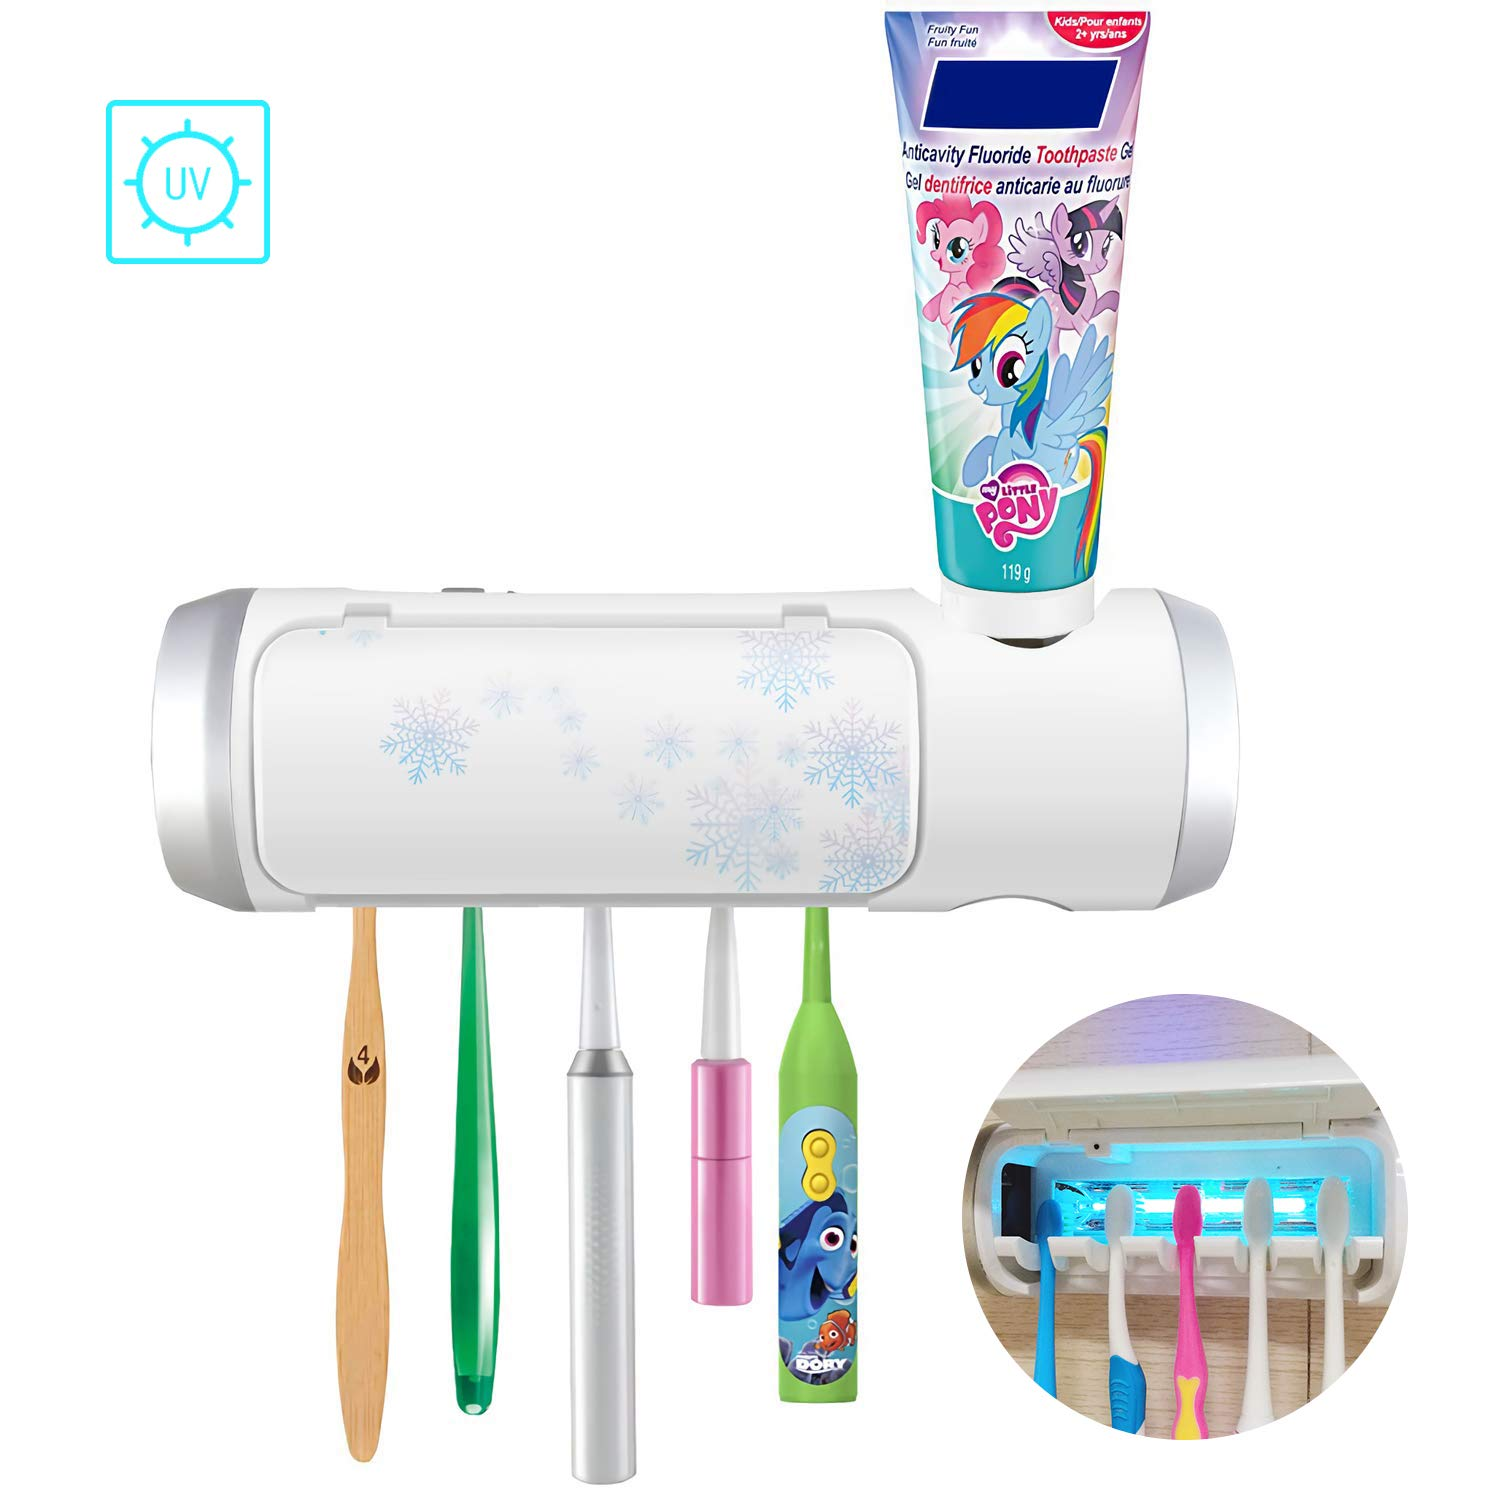 UV Toothbrush Holder with Sterilization Function, Drying and Toothpaste Holder, 5 Slots Family Kids Toothbrushes for Shower Bathroom,USB Charging Equipped with an Adapter